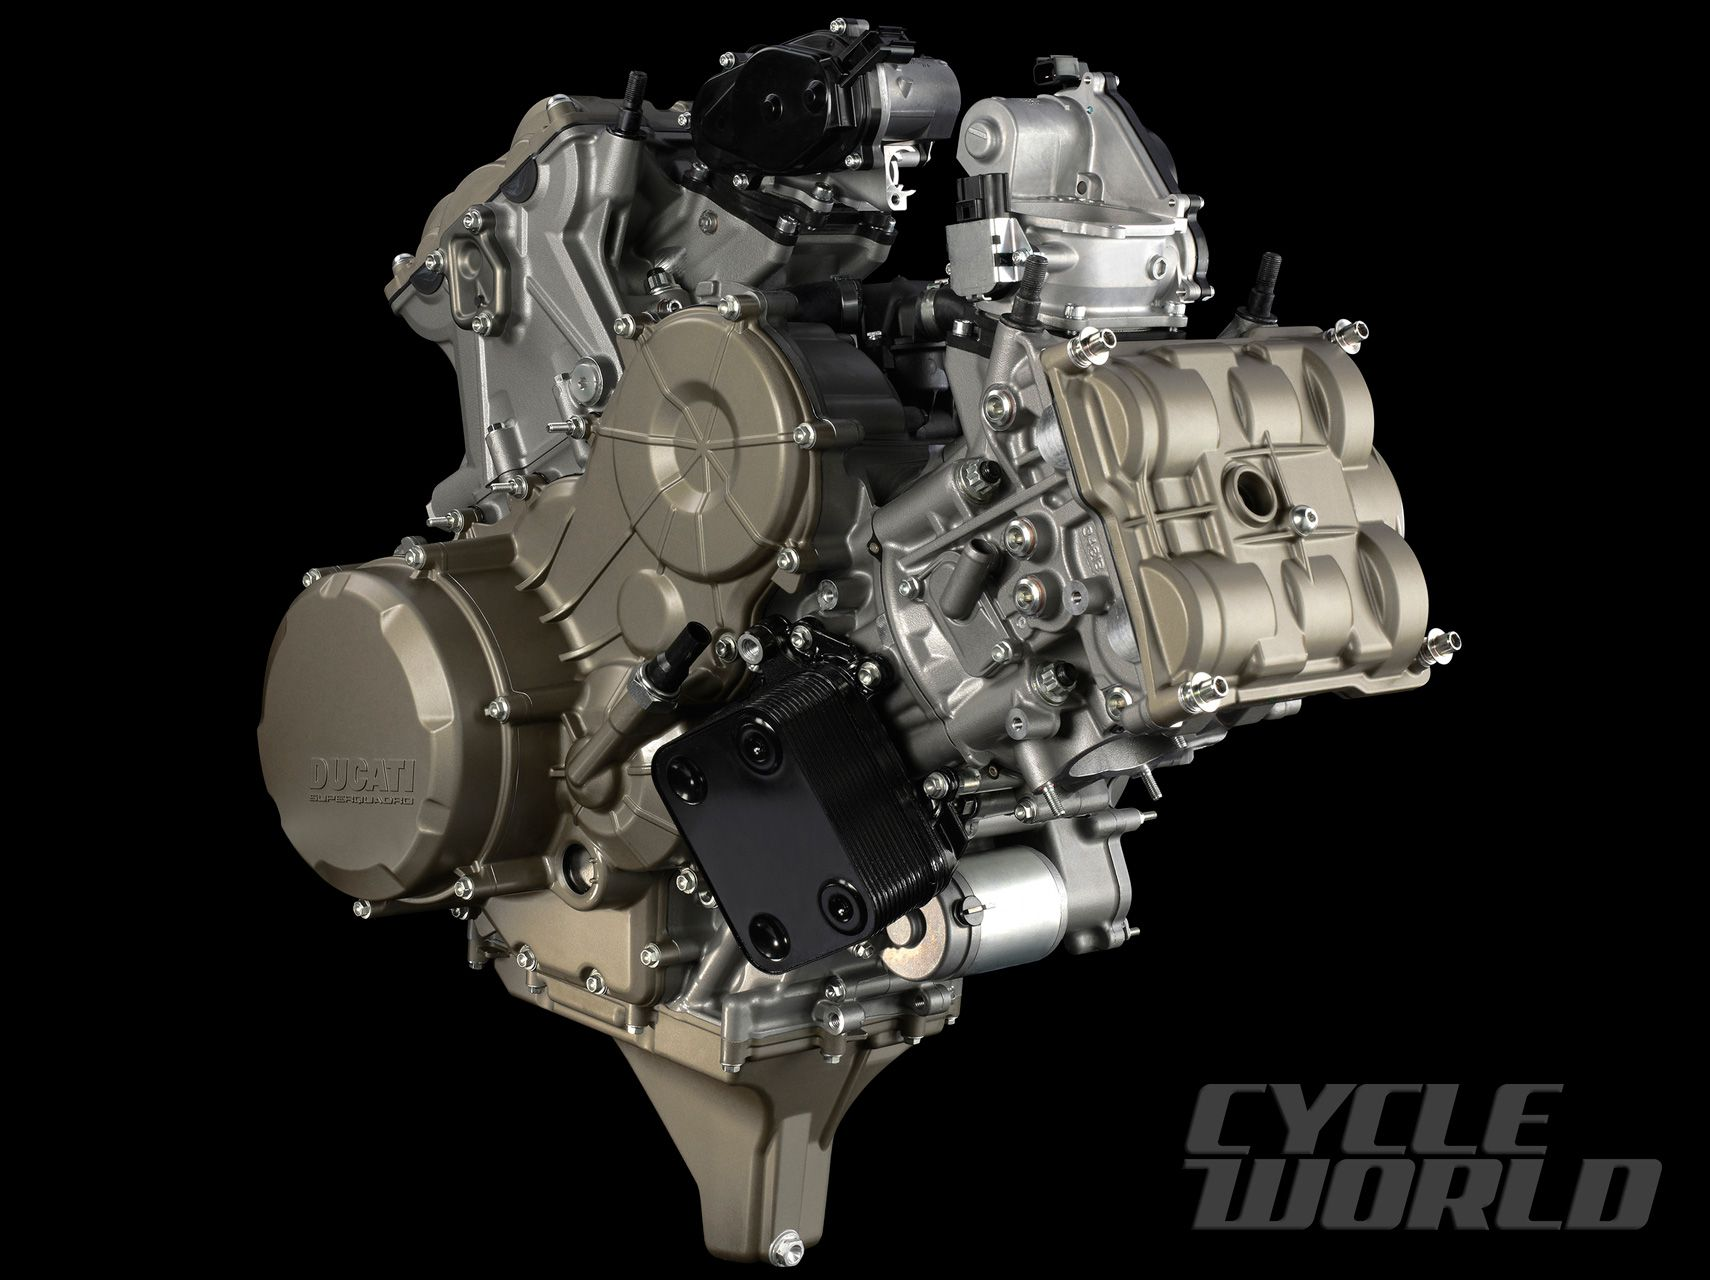 Motorcycle V-Twin Engine Tech Insights | Cycle World